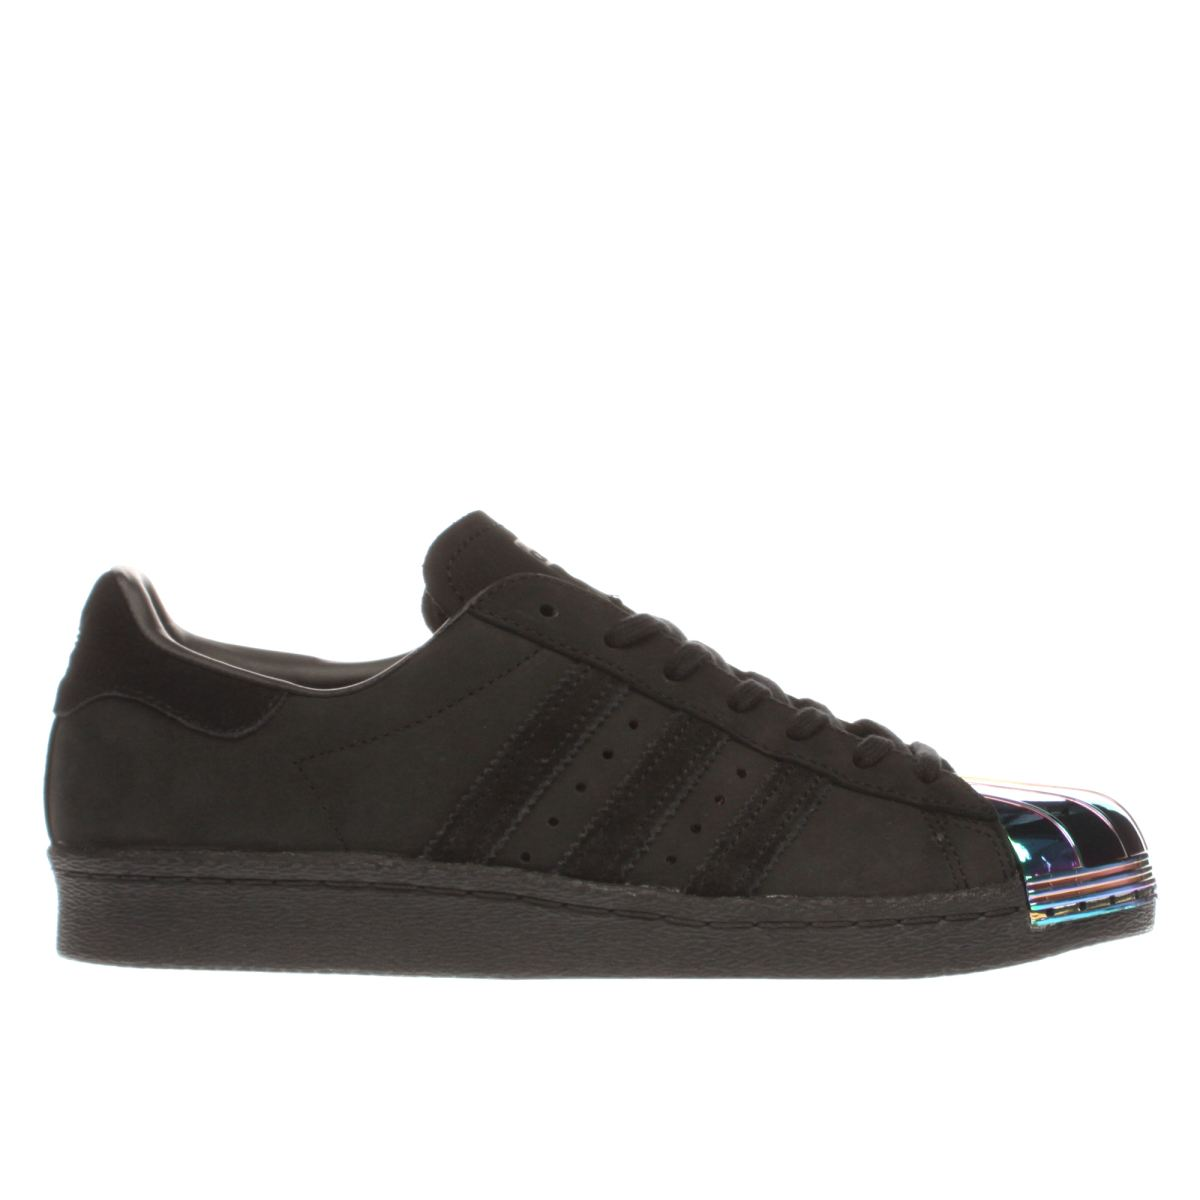 Adidas Superstar Gray